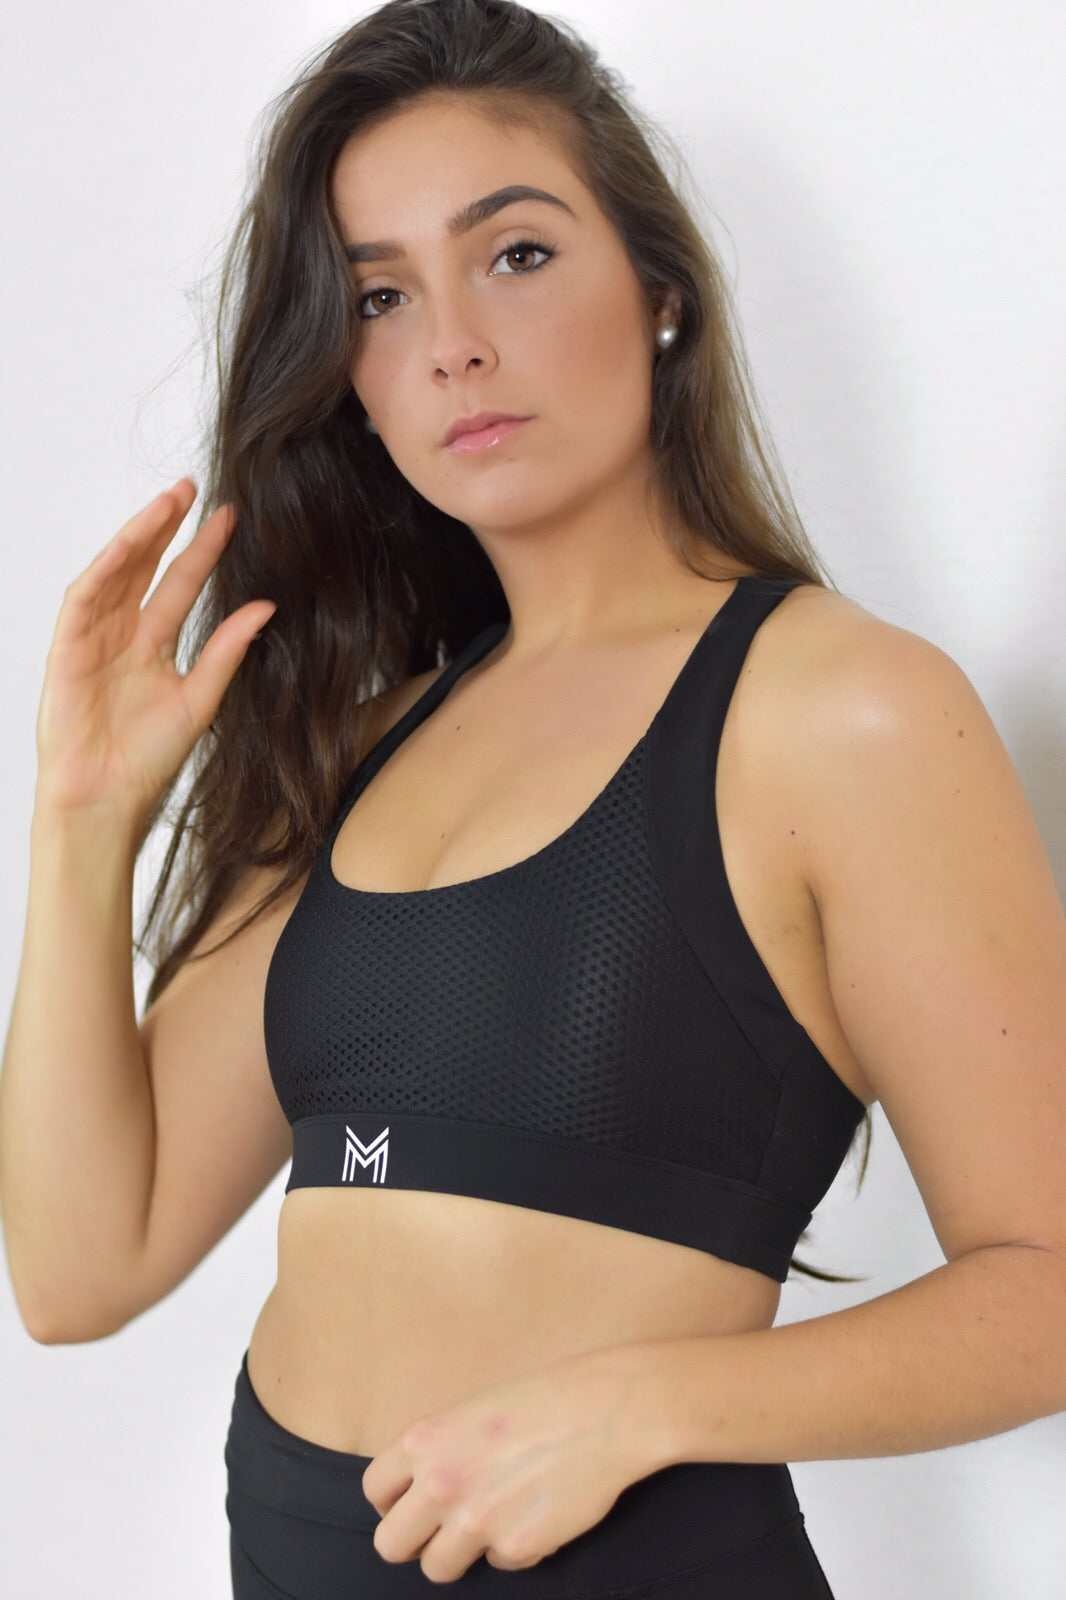 3D Air Riding & Sports Bra